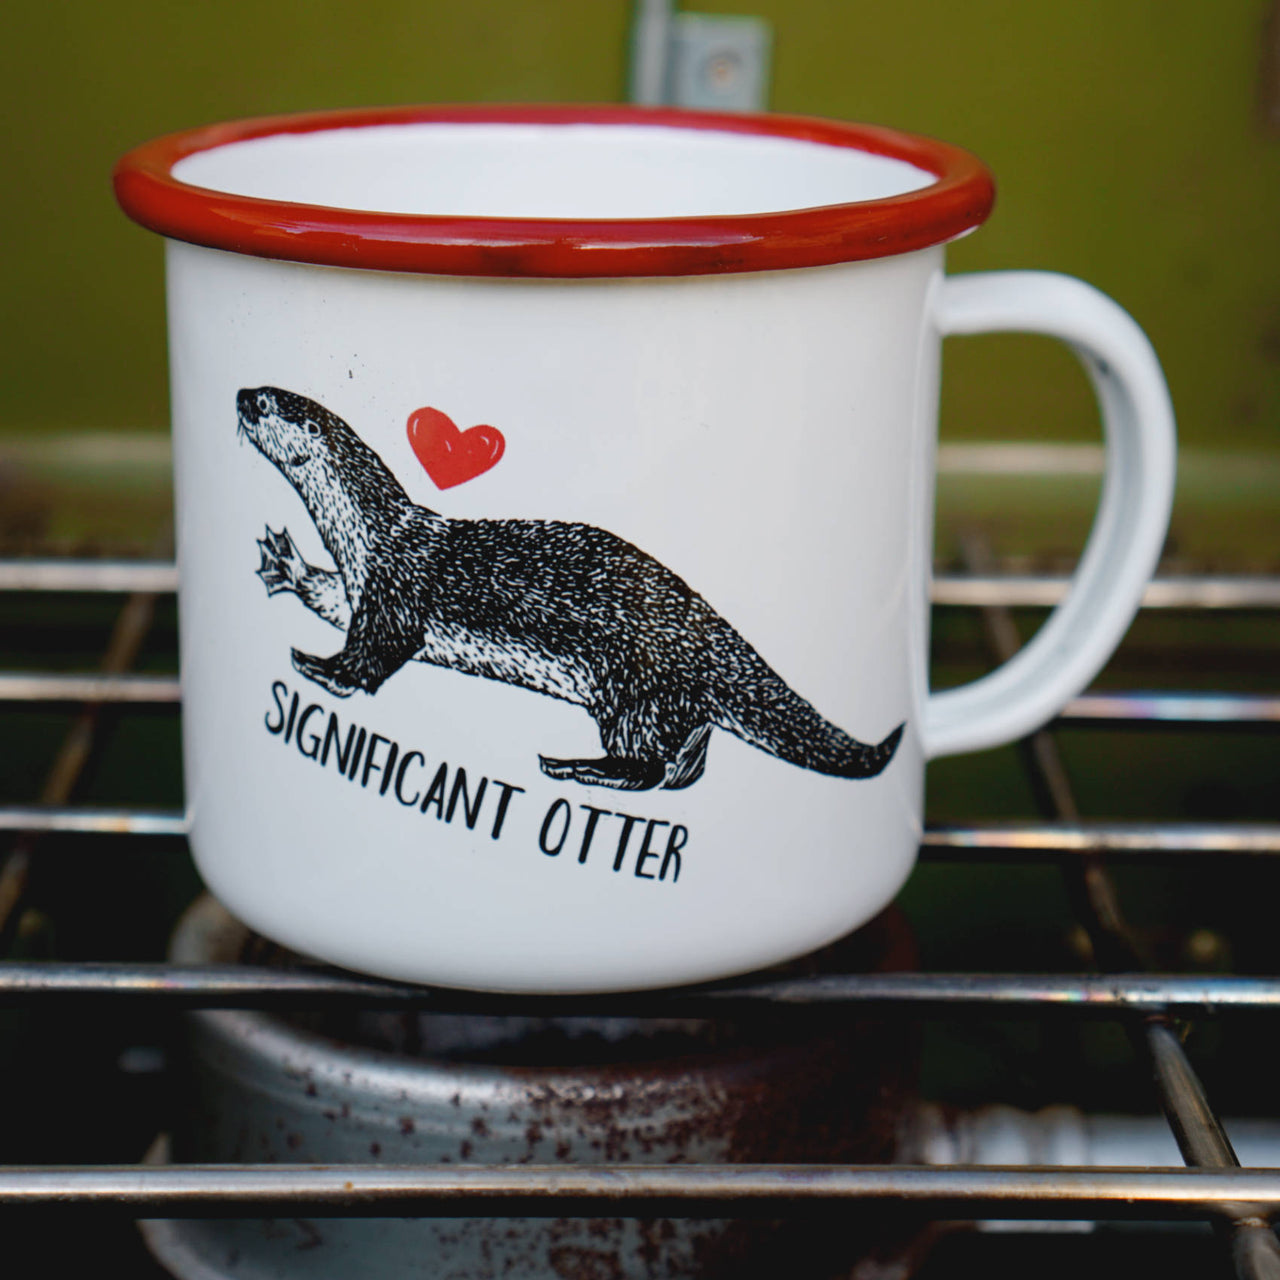 Significant Otter - Cute Couples Camping Mug